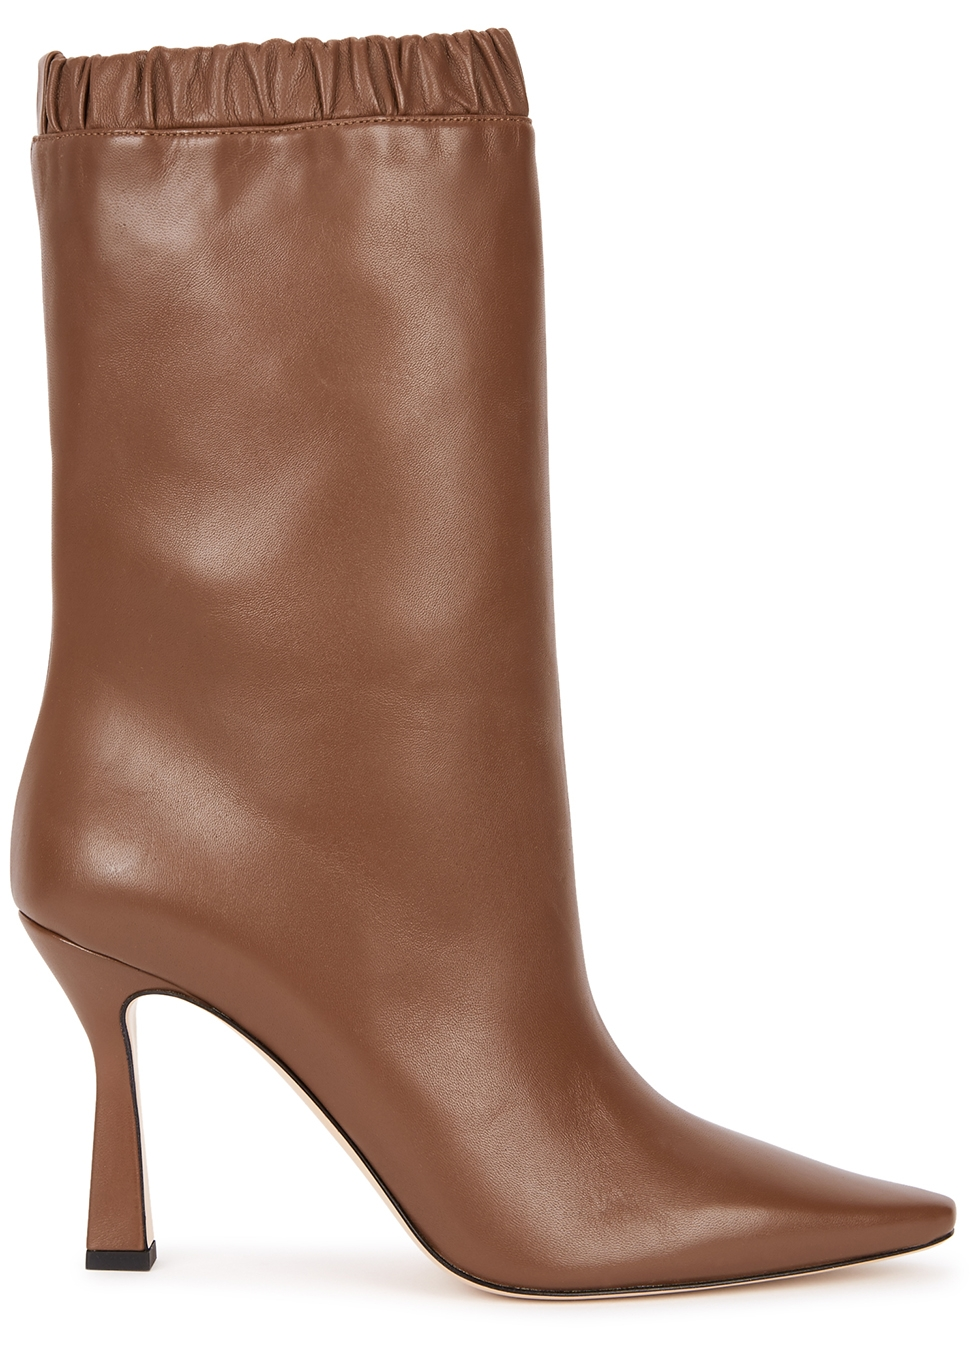 Lina 95 brown leather ankle boots